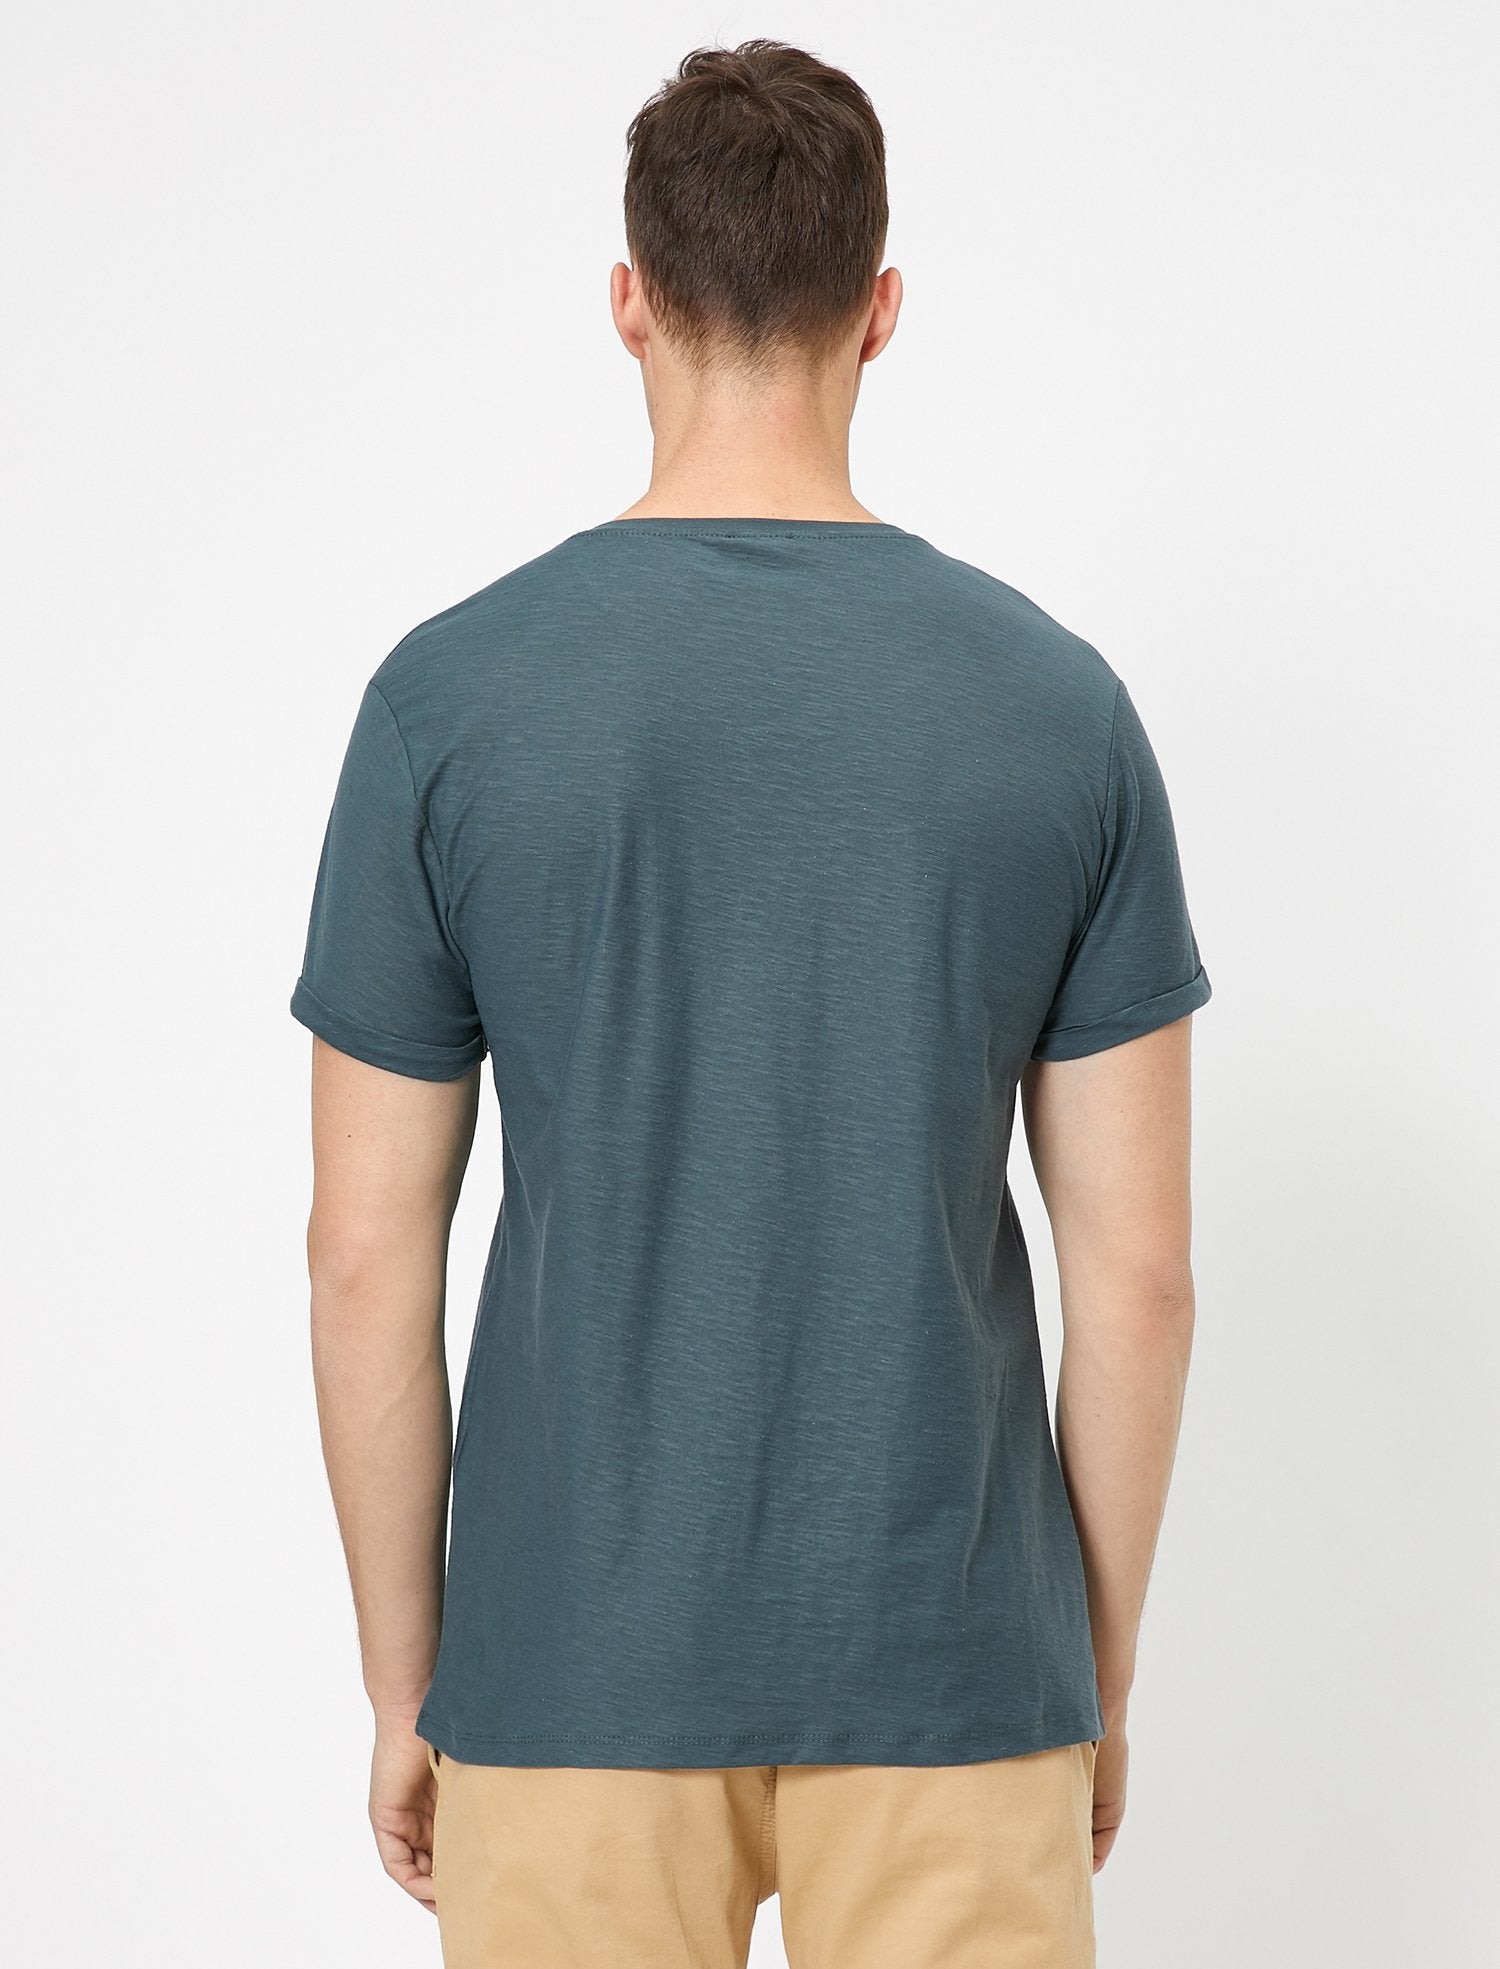 Slubbed Basic Tshirt in Anthracite